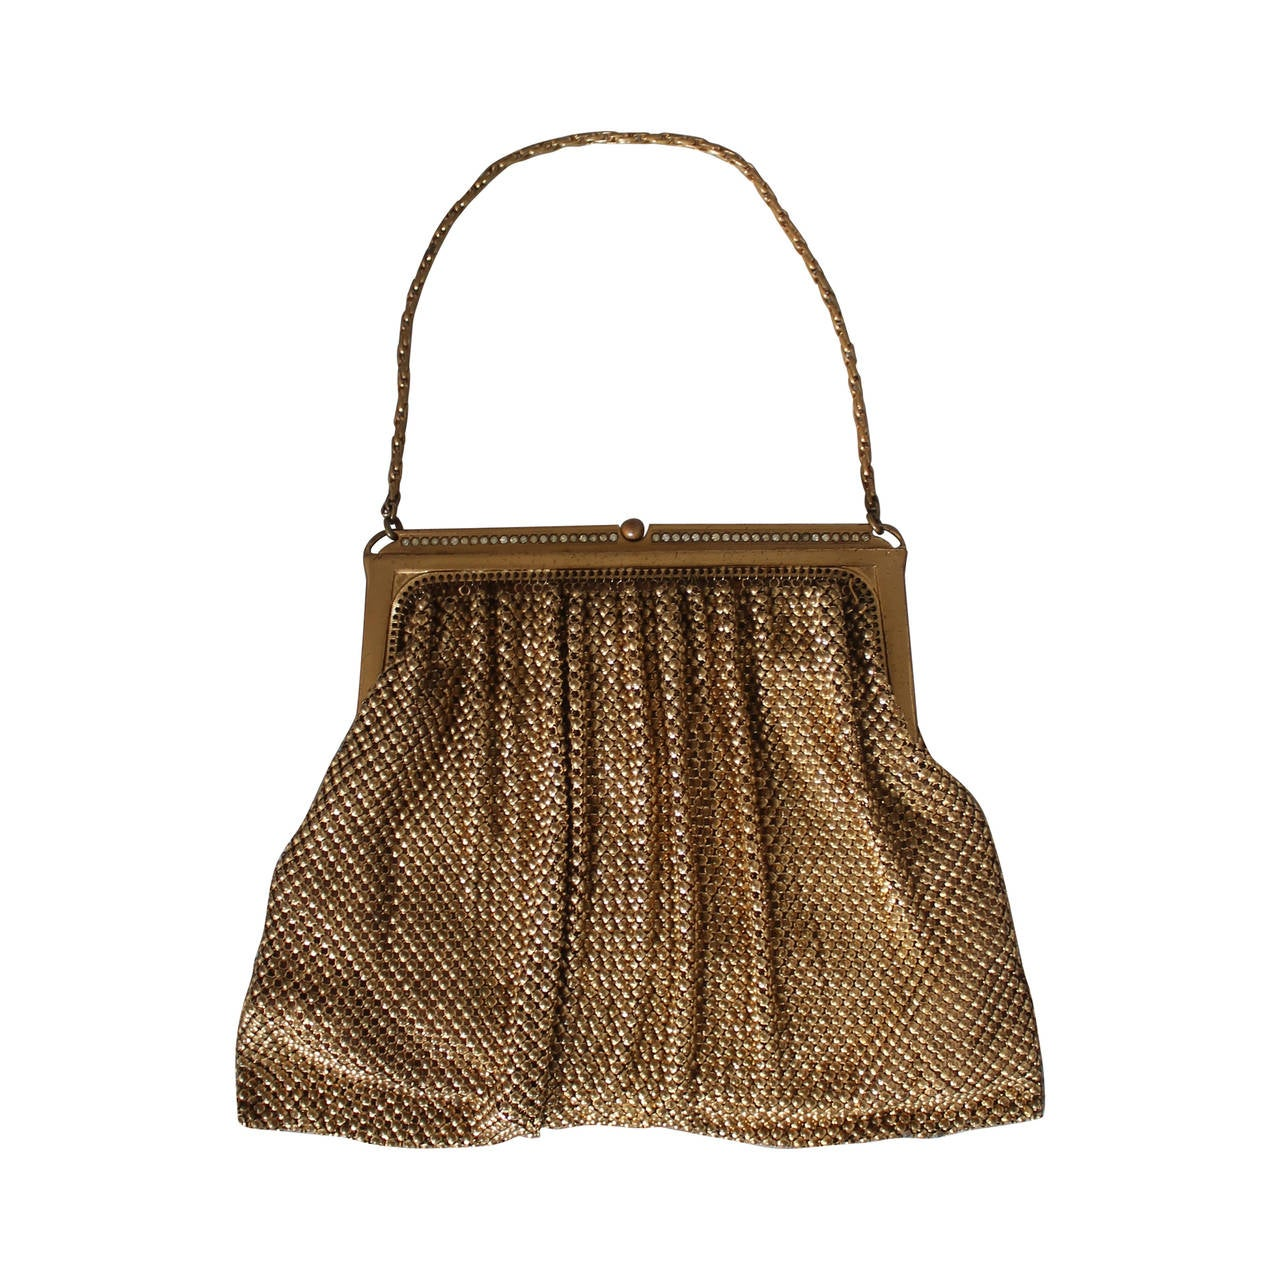 1940 s vintage whiting and davis gold mesh bag with